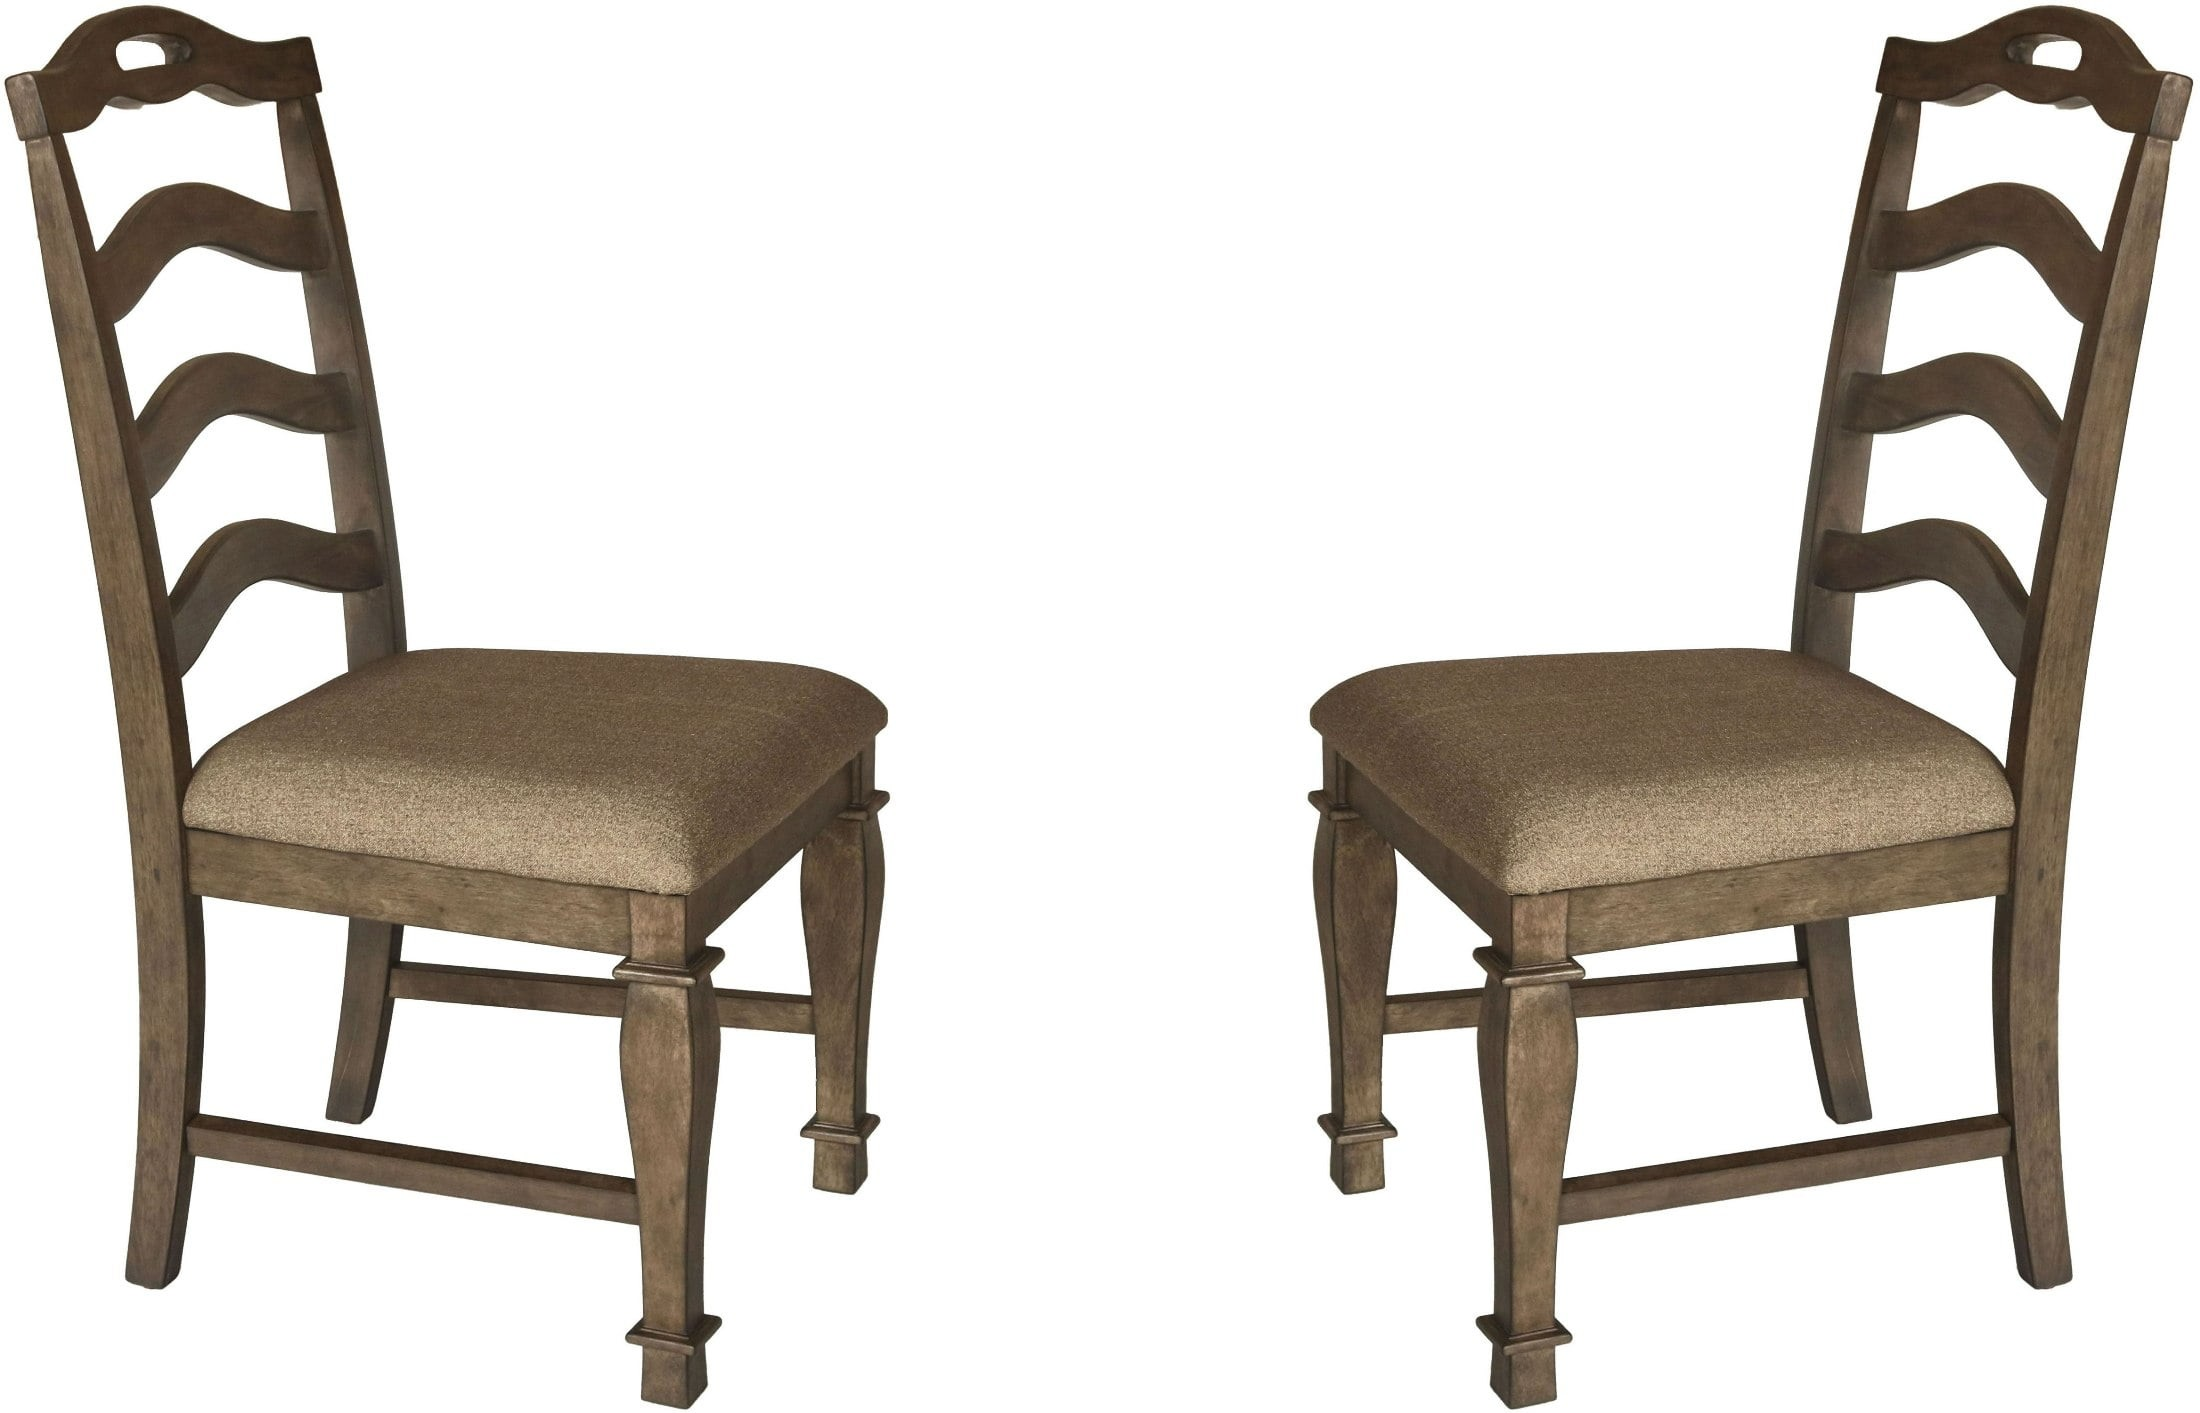 Distressed White Dining Chairs Ava Distressed Ash Dining Chair Set Of 2 From New Classic